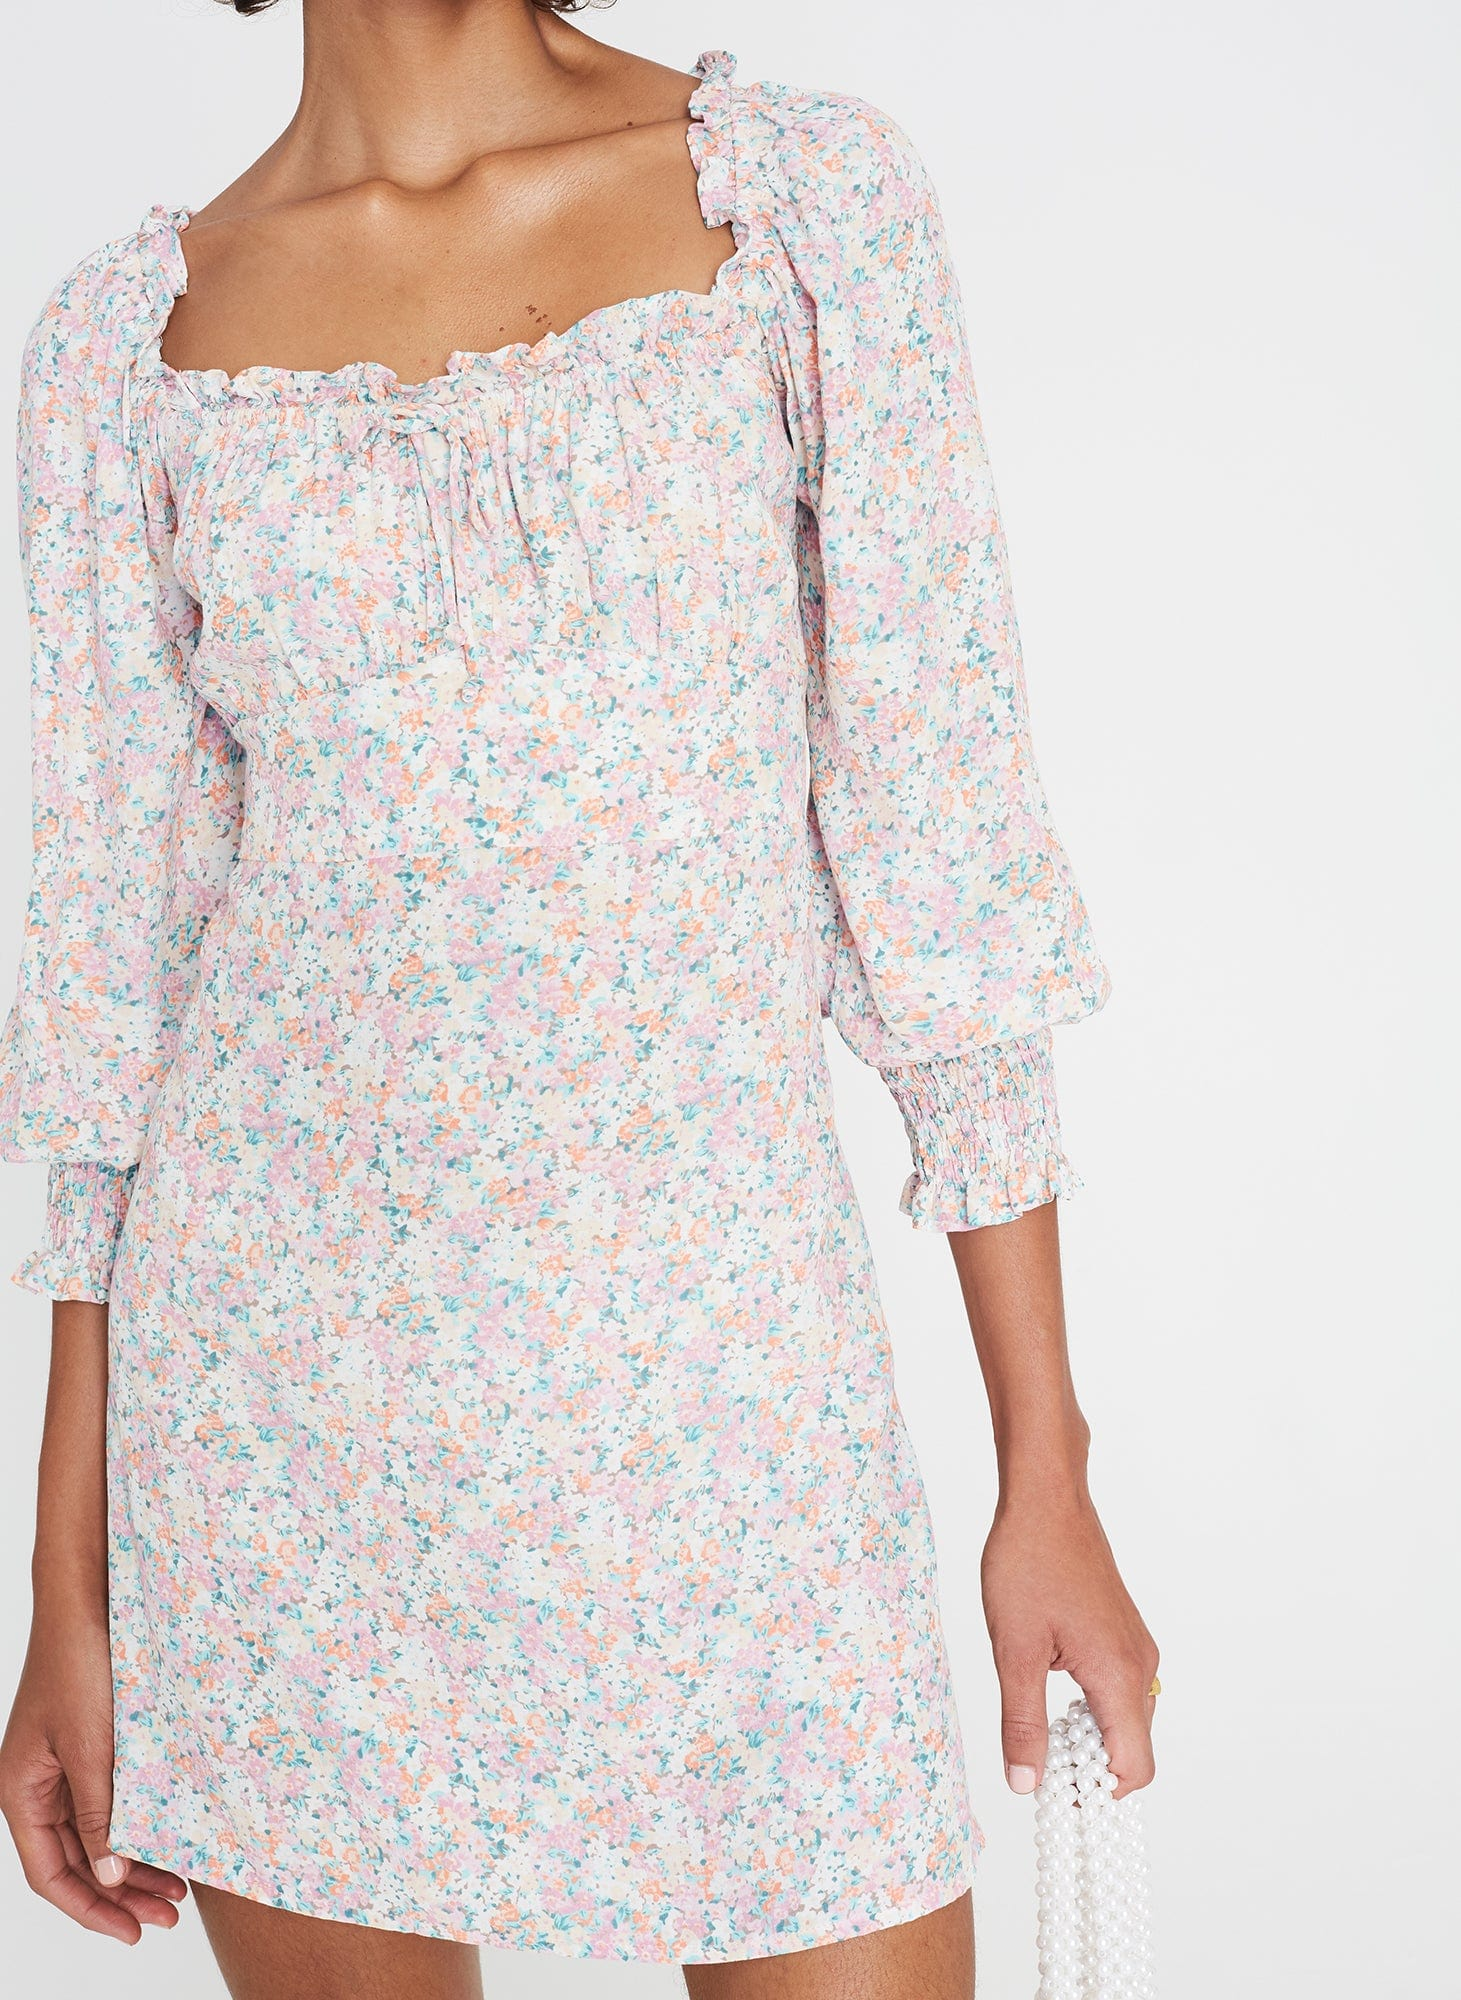 Vionette Floral Print - Pink - Ira Mini Dress